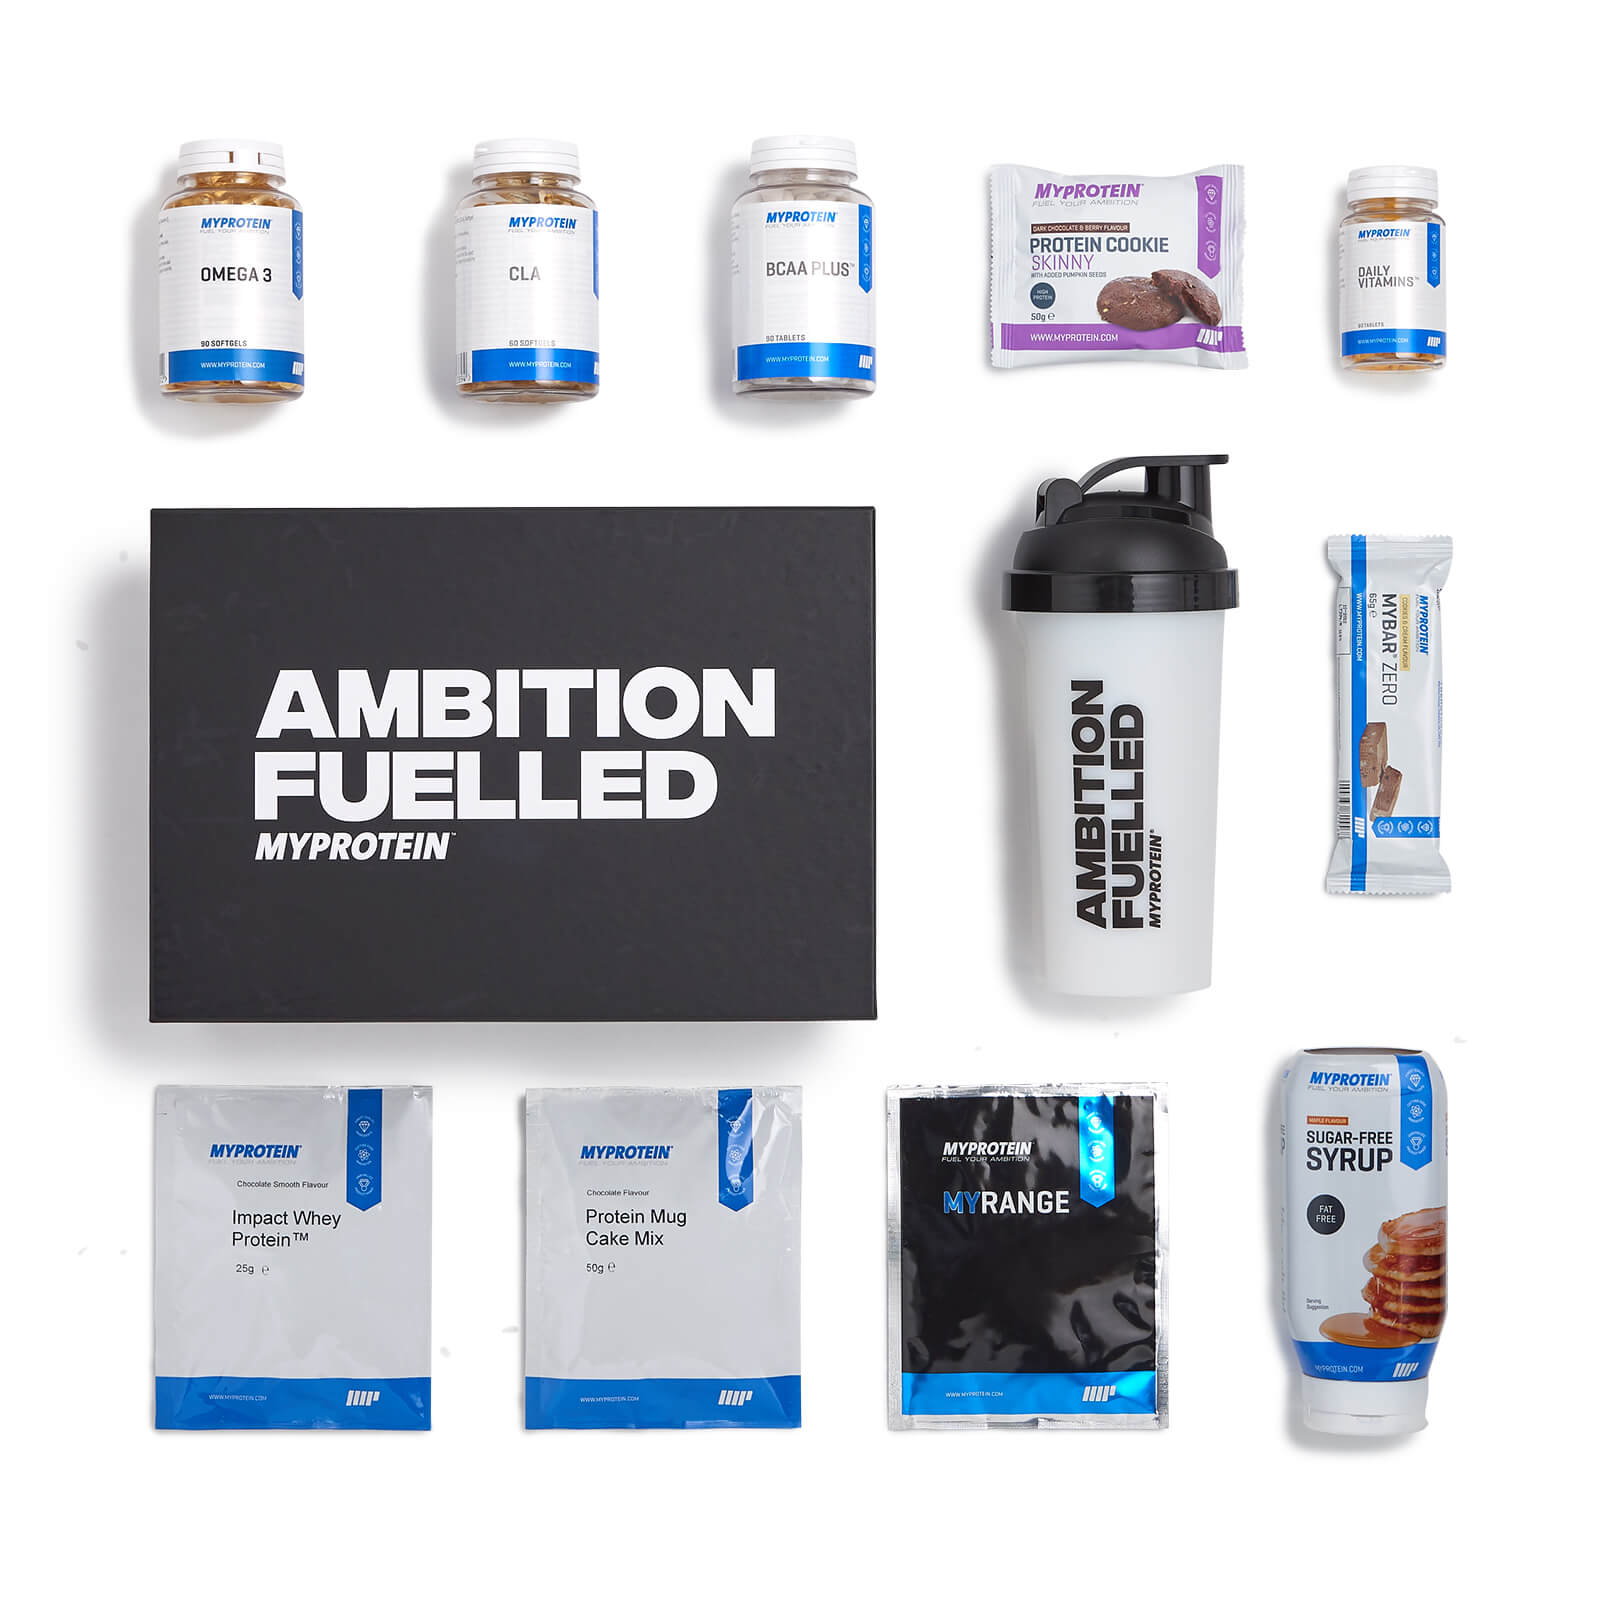 Coffret Ambition Fuelled